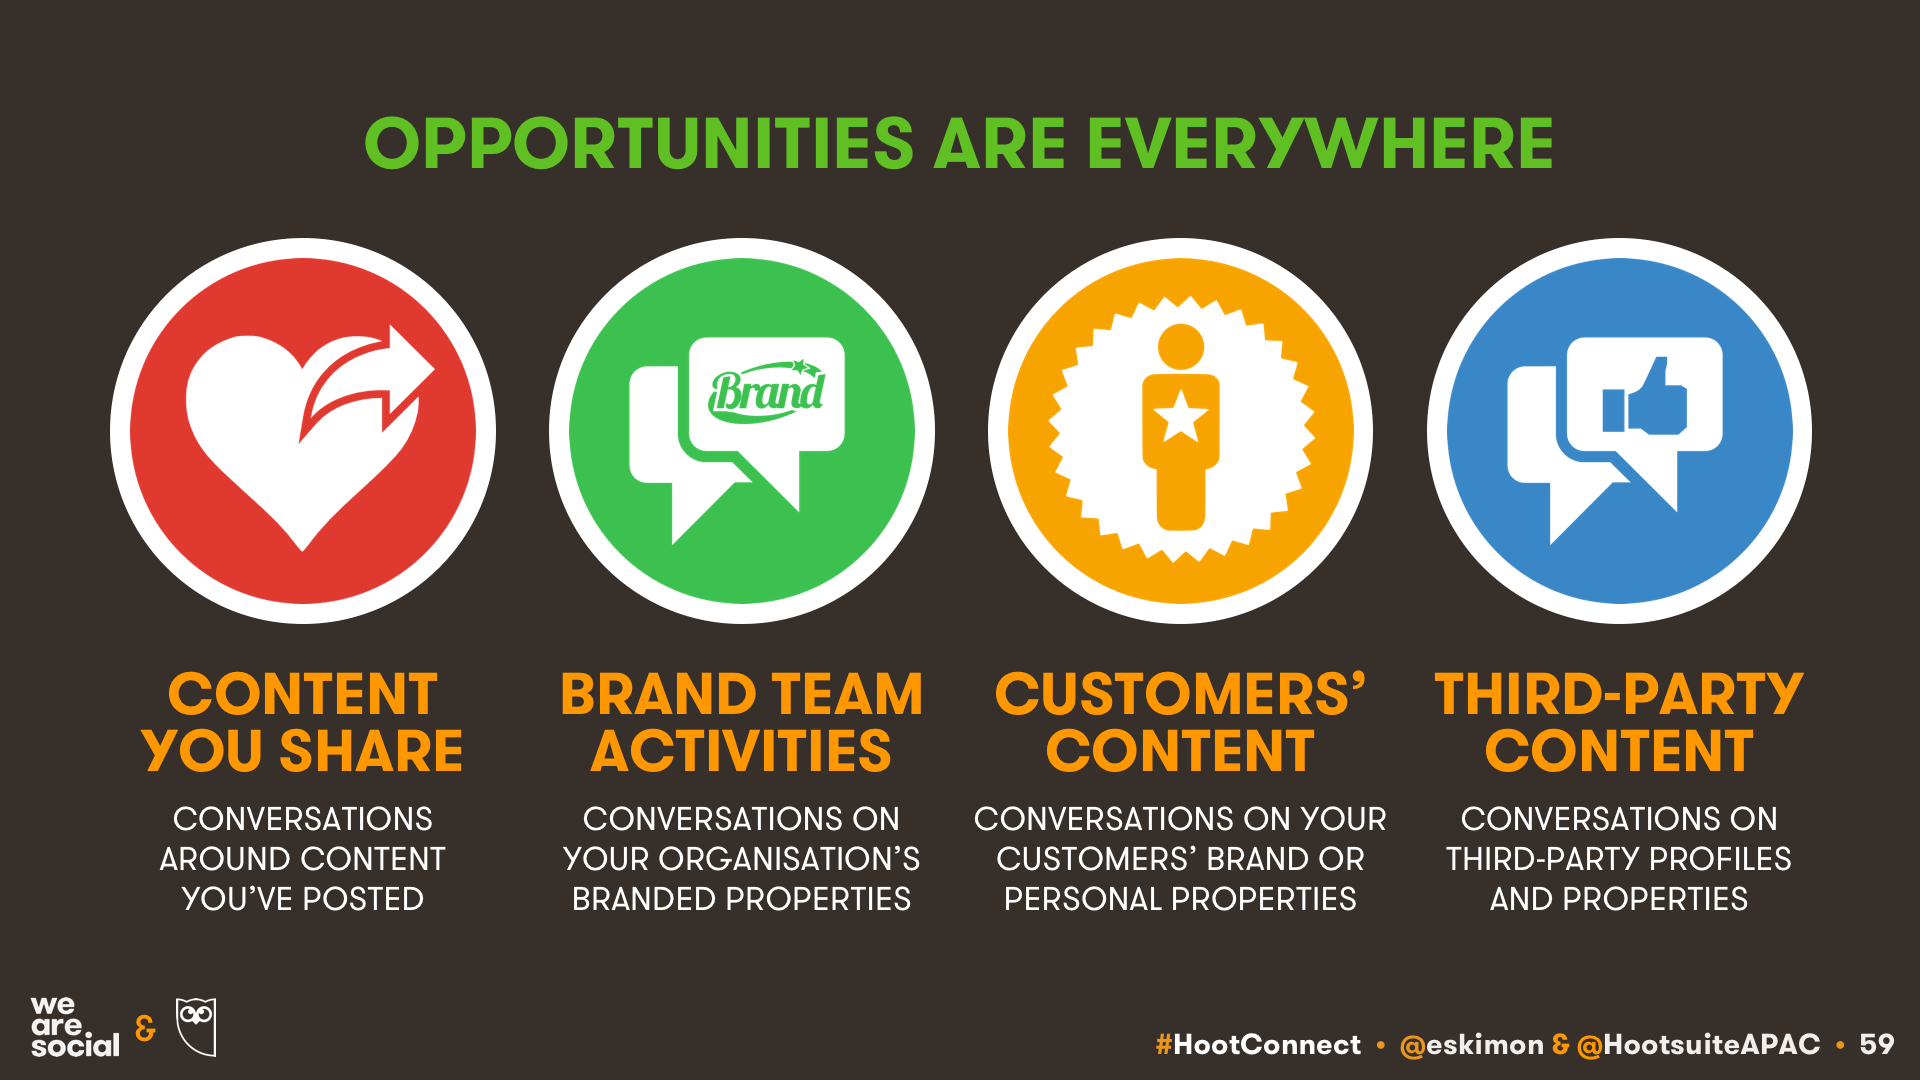 KEPIOS: SOCIAL SELLING ENGAGEMENT OPPORTUNITIES